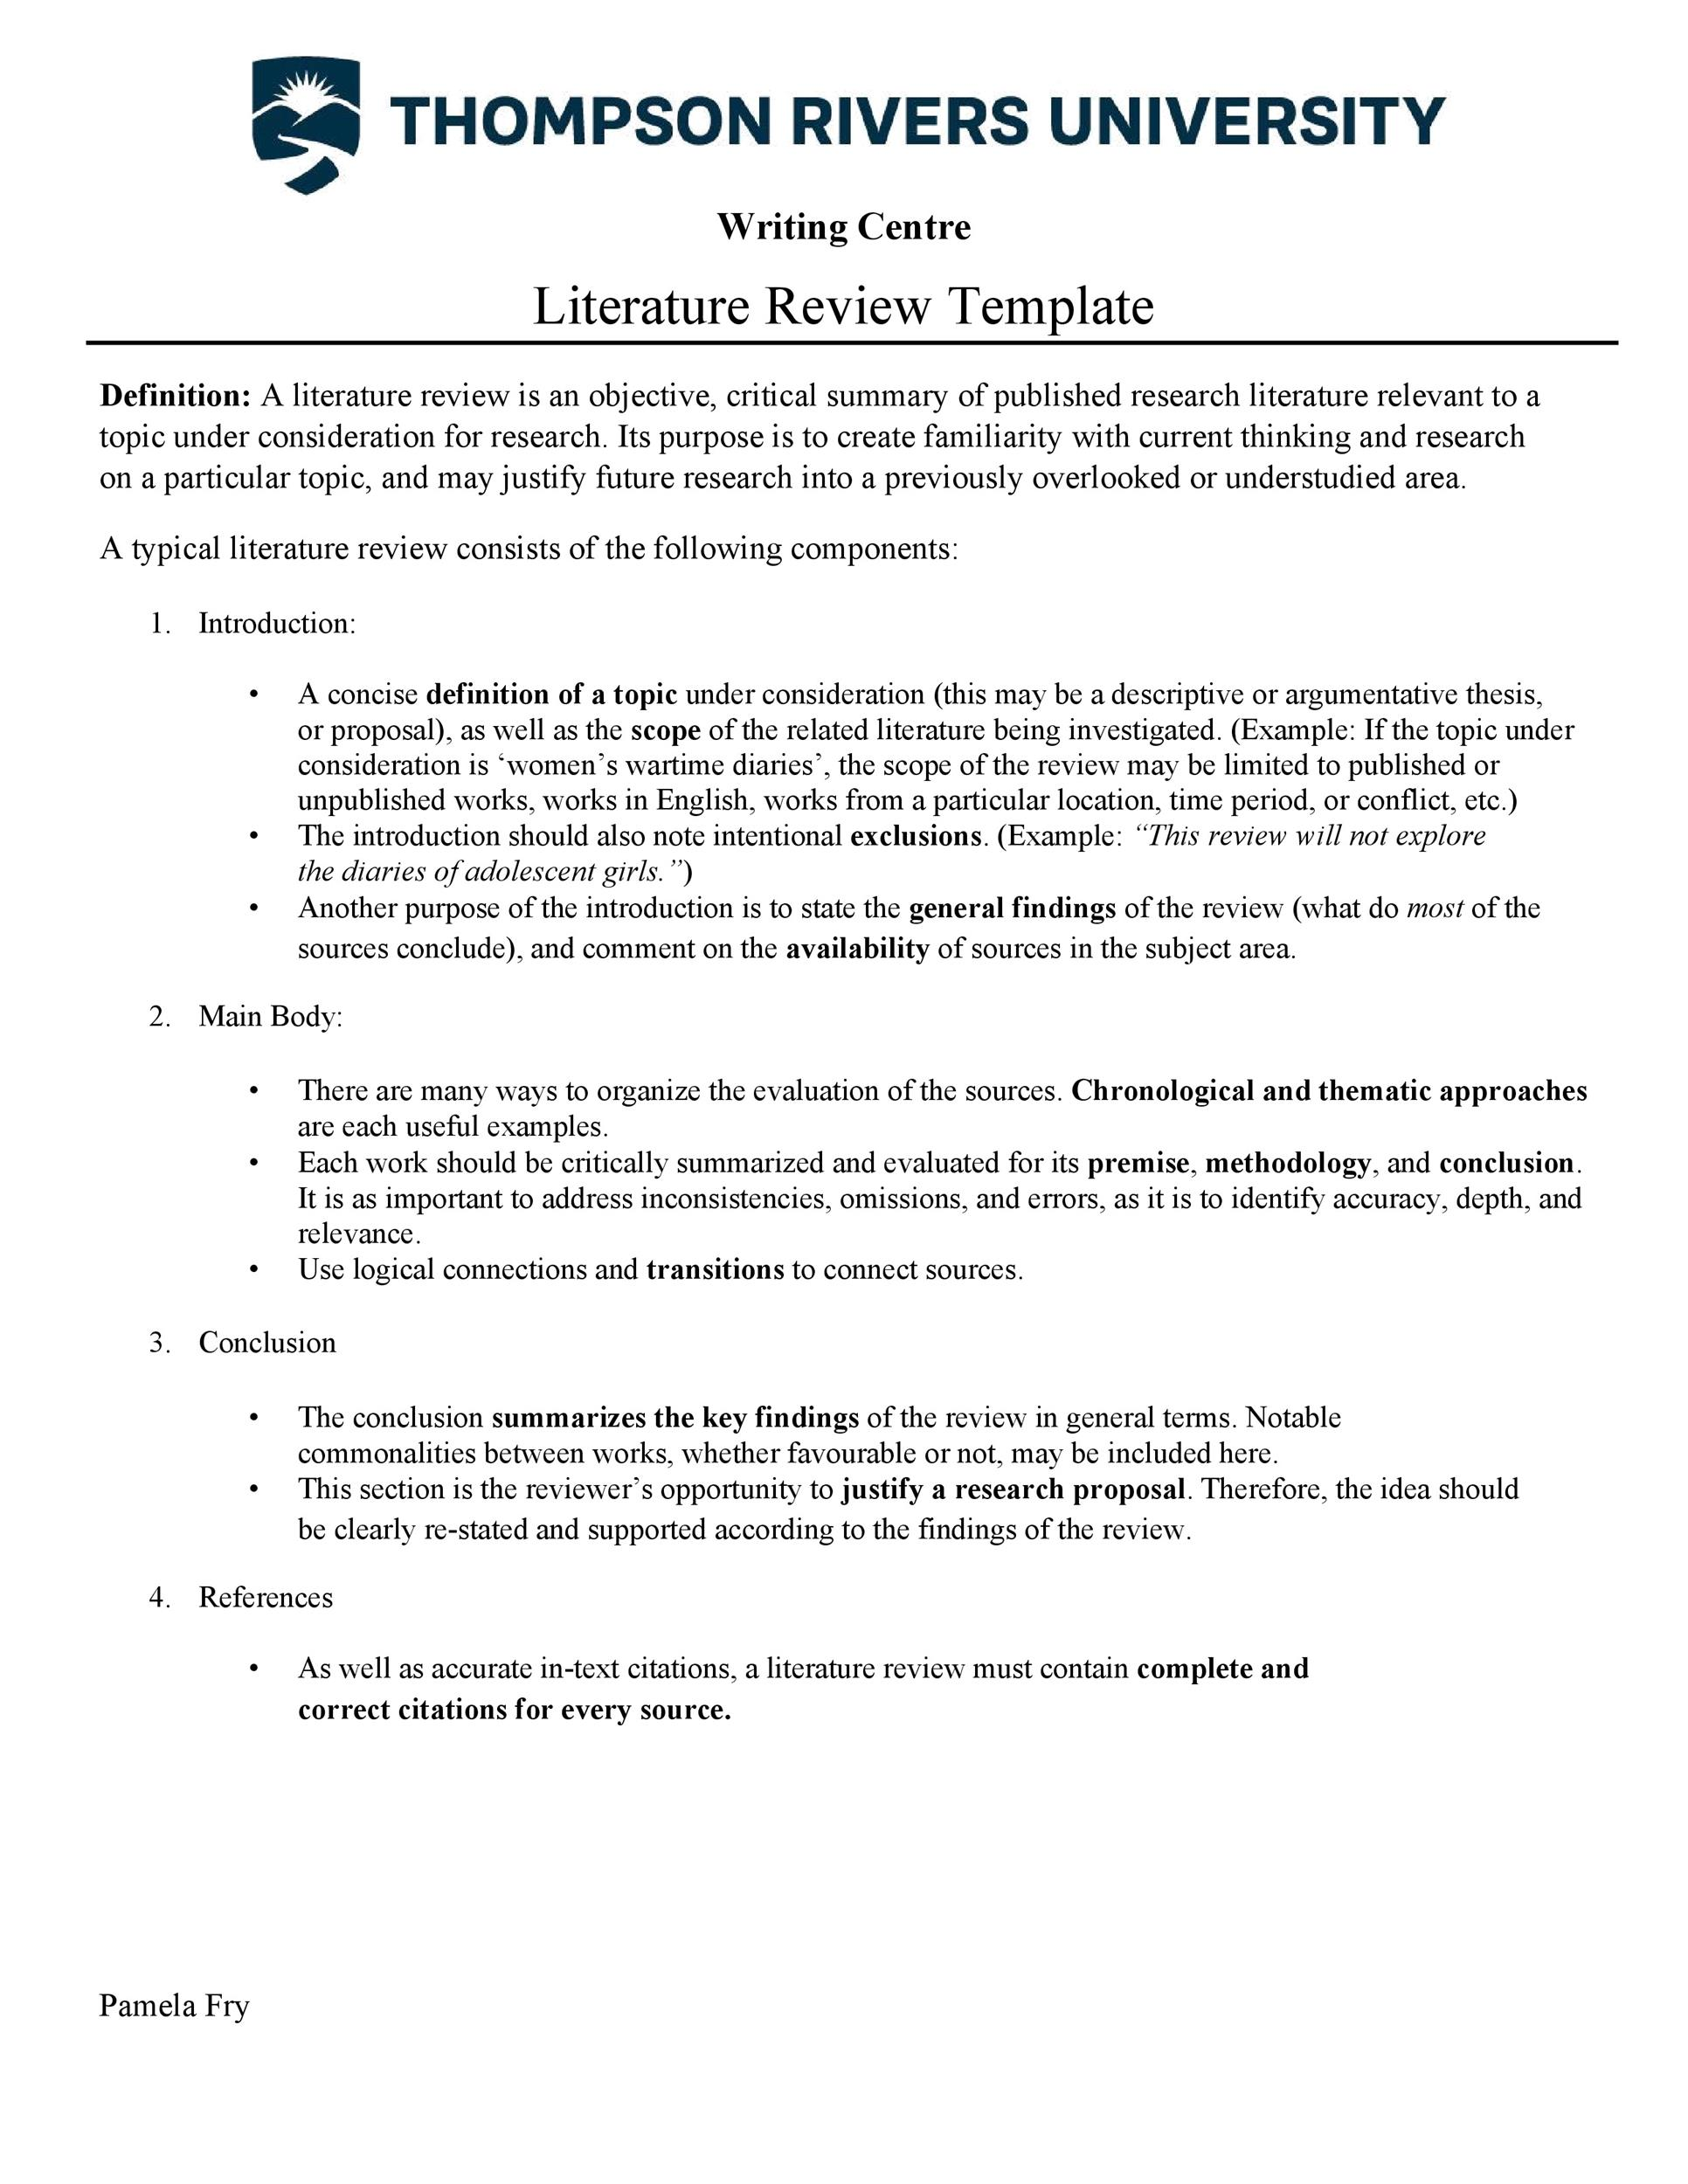 Free literature review template 01